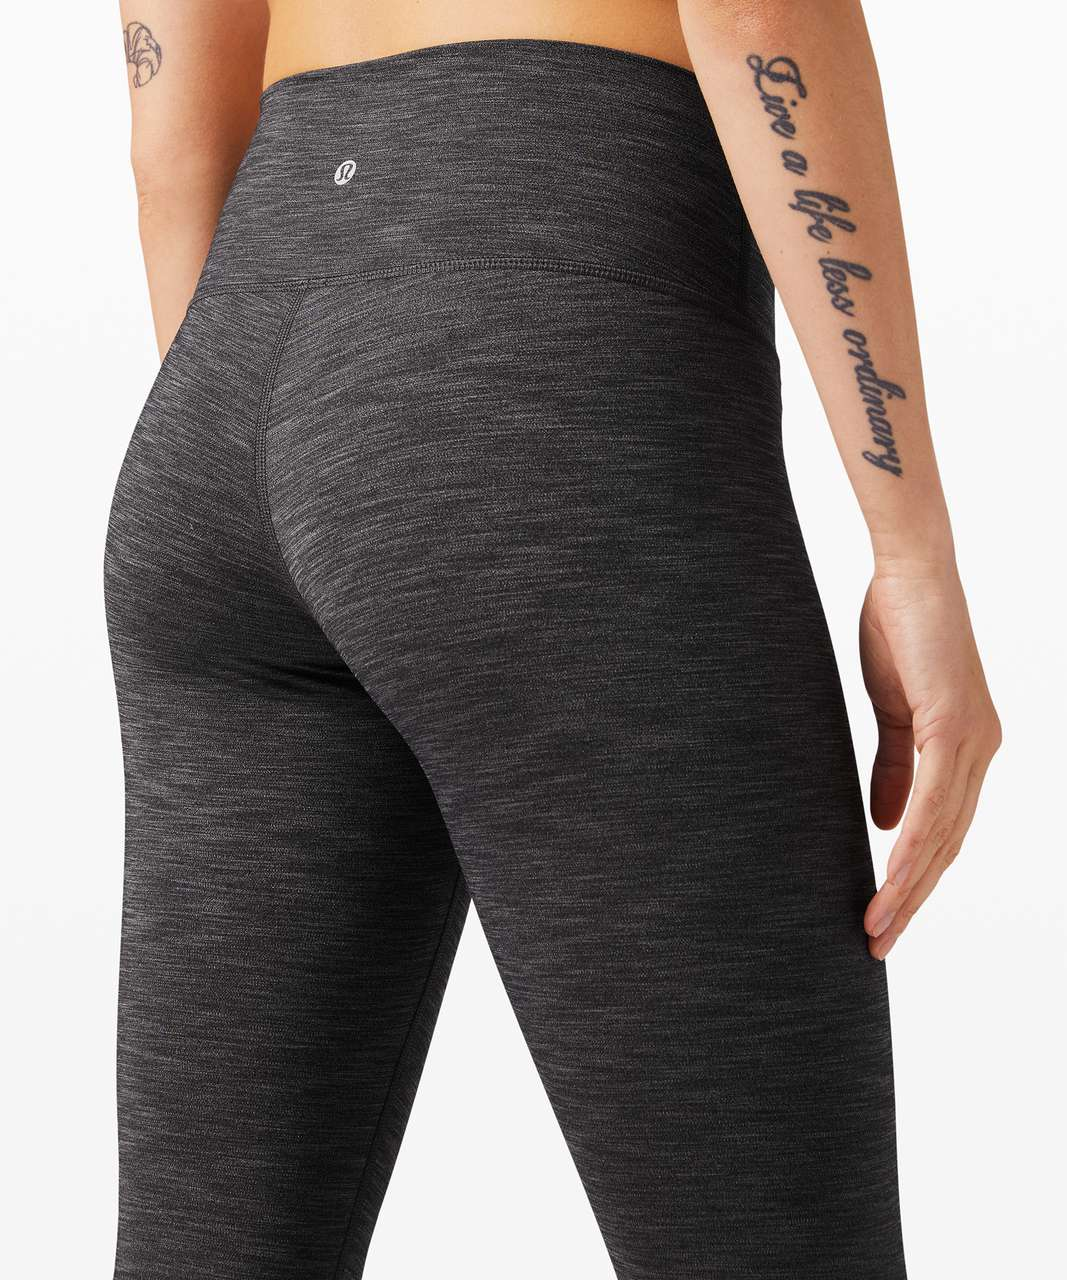 "Lululemon Wunder Under Crop High-Rise *Full-On Luxtreme 23"" - Heathered Black"